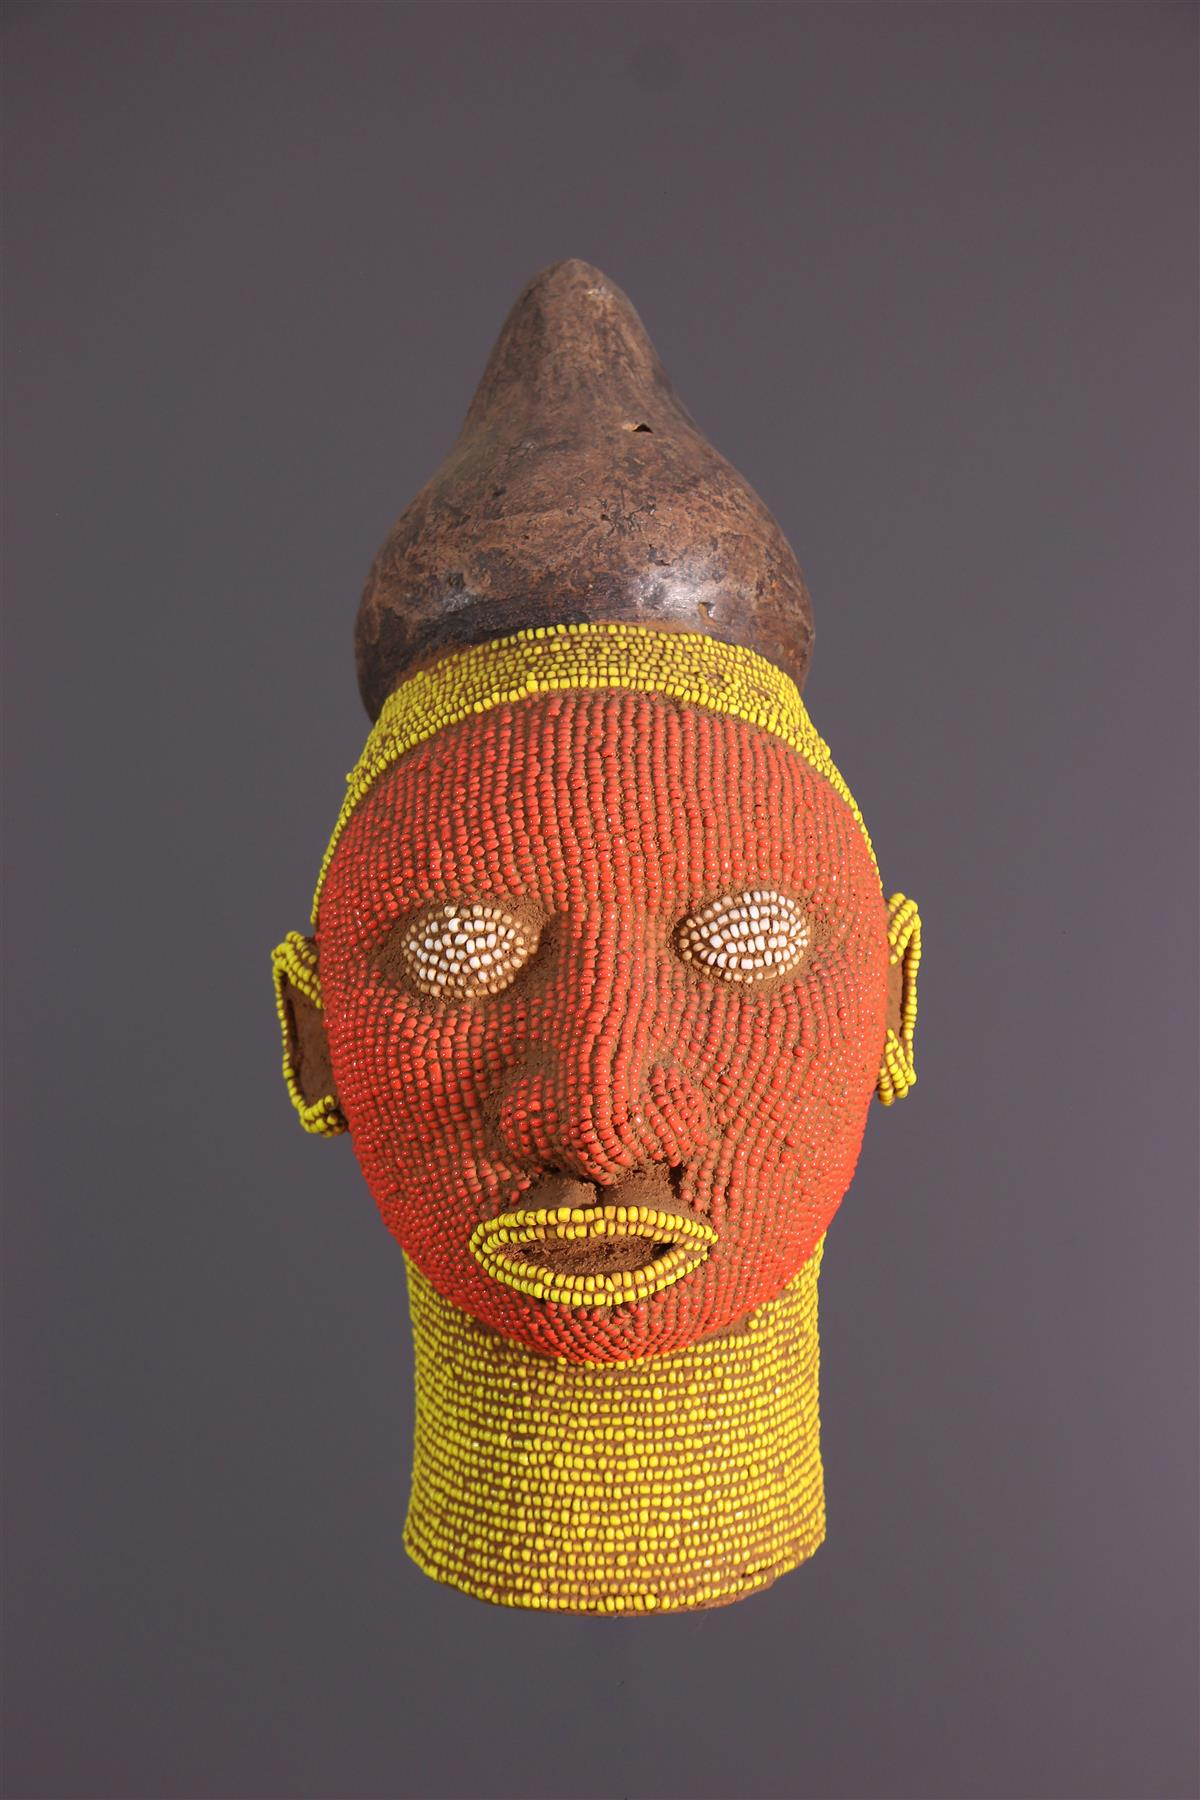 Beaded head - African art